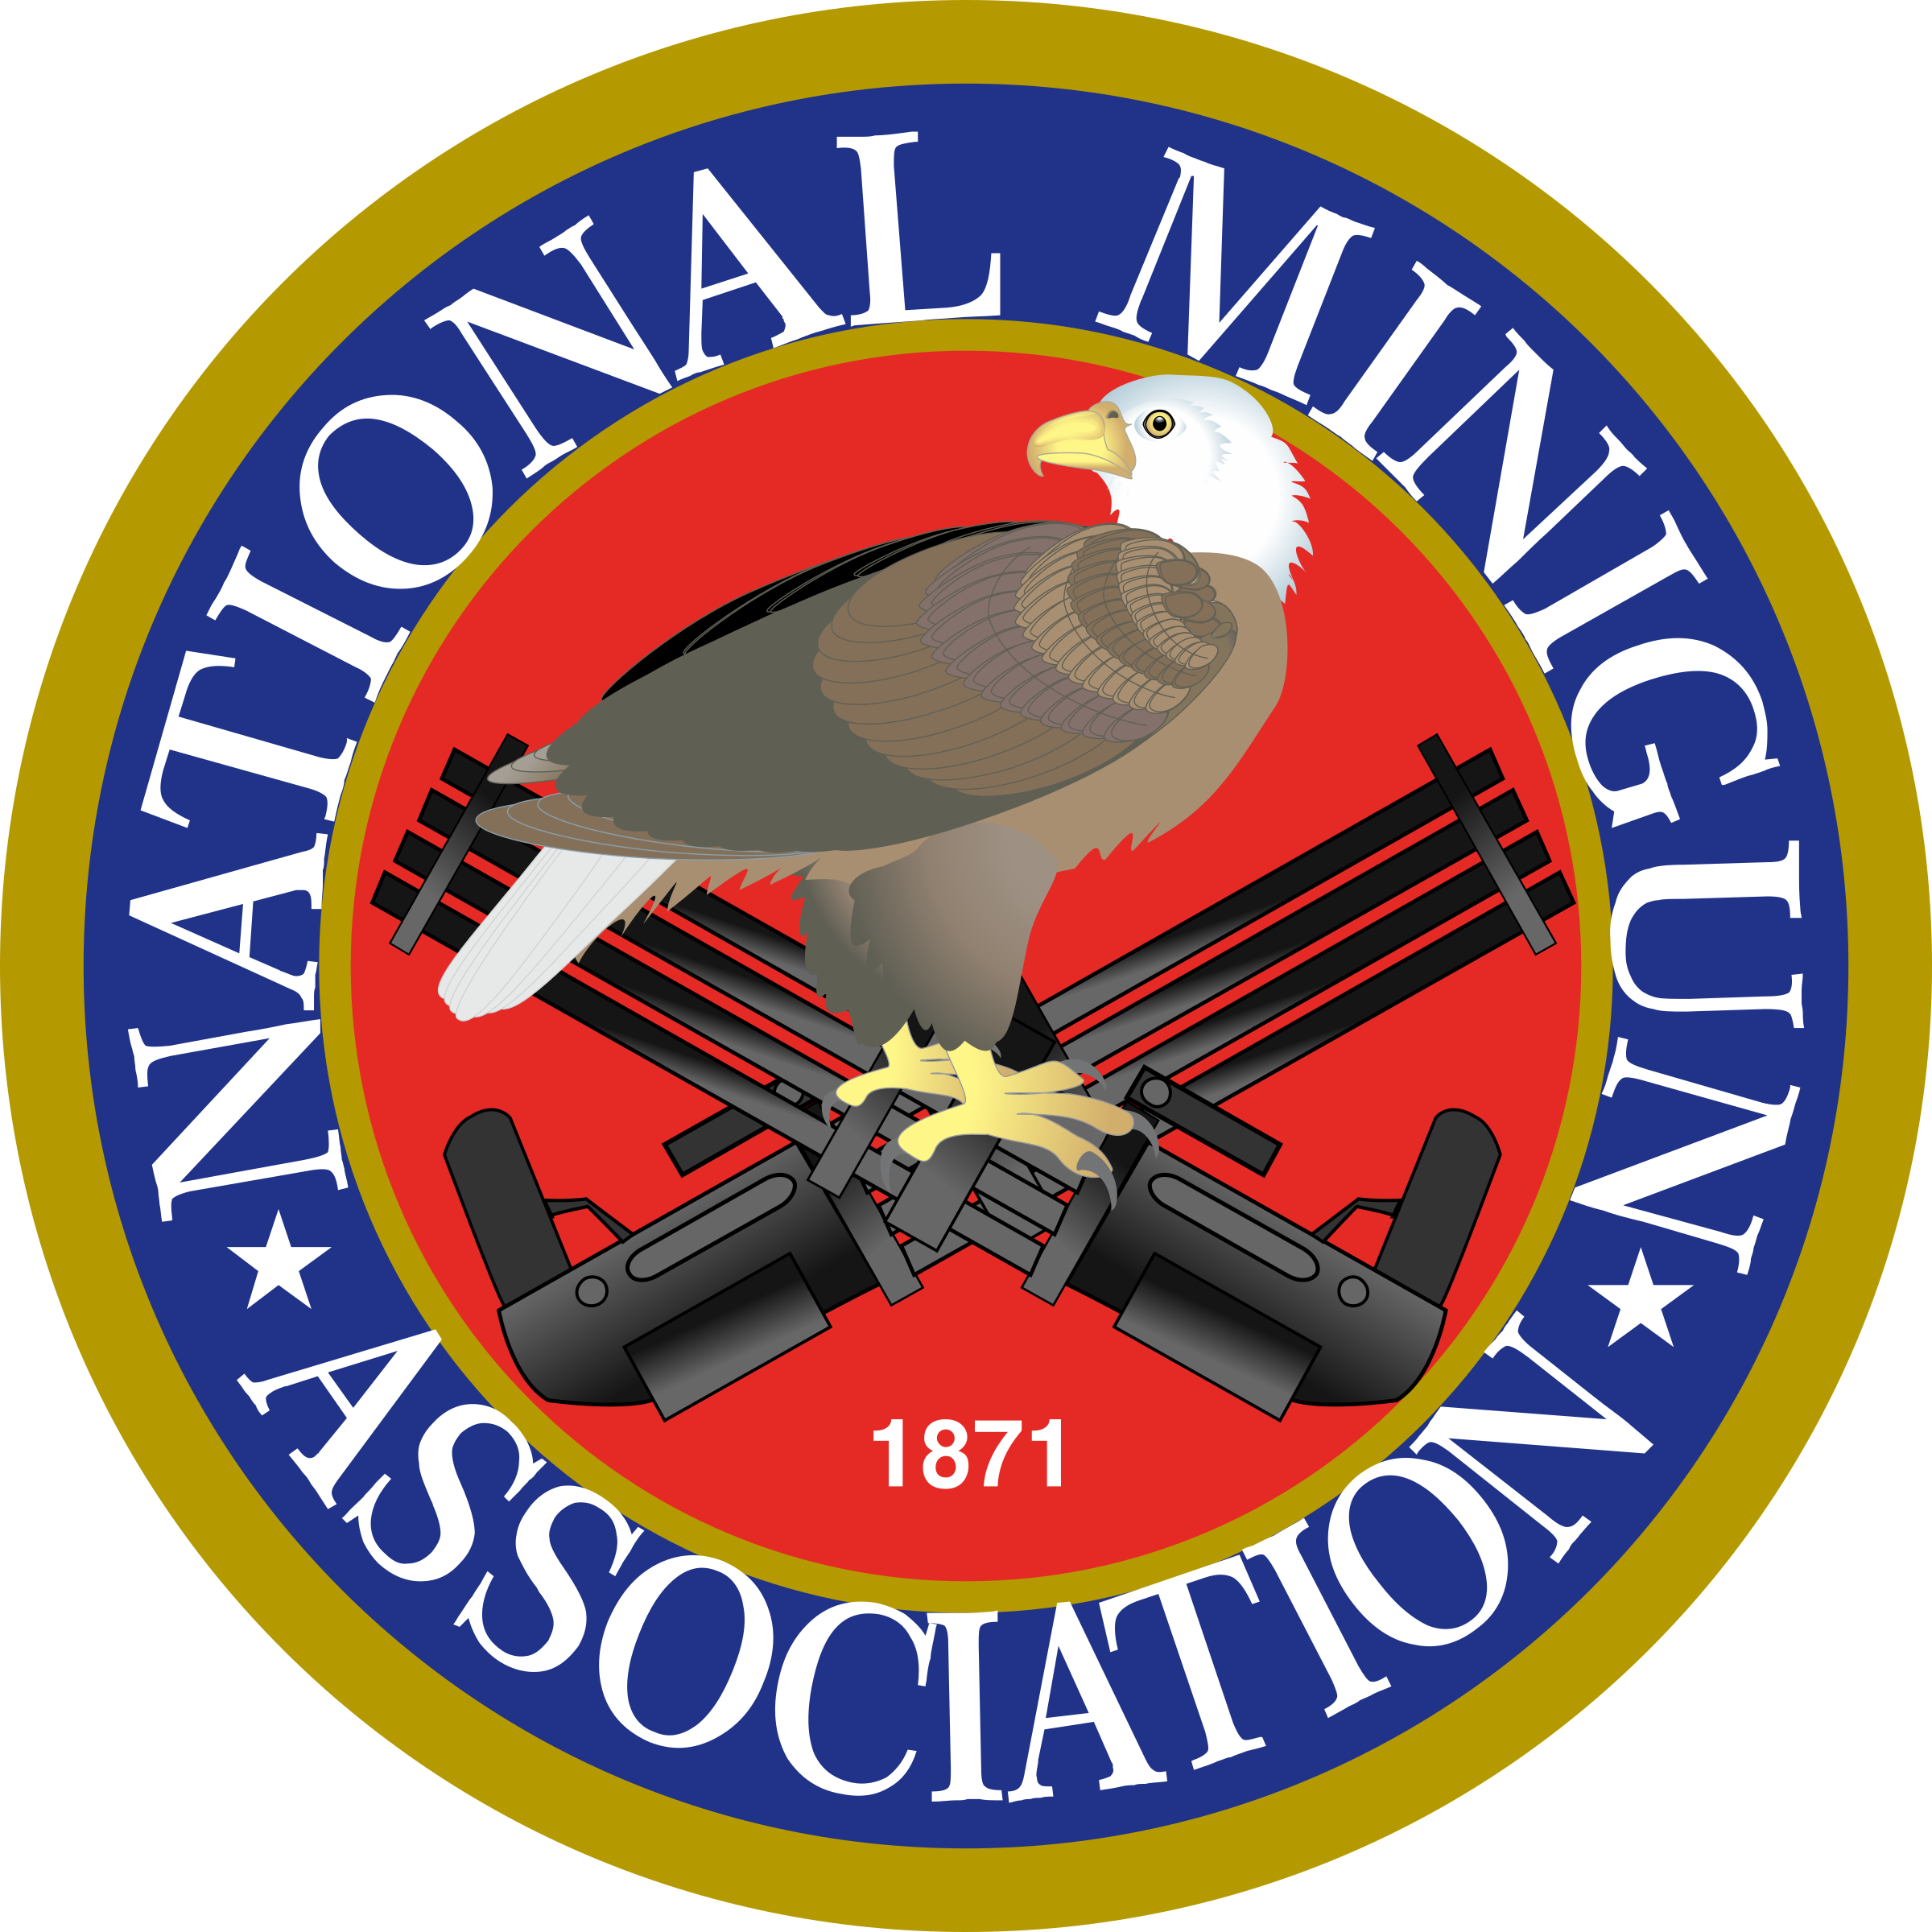 National Minigun Association by GDJ